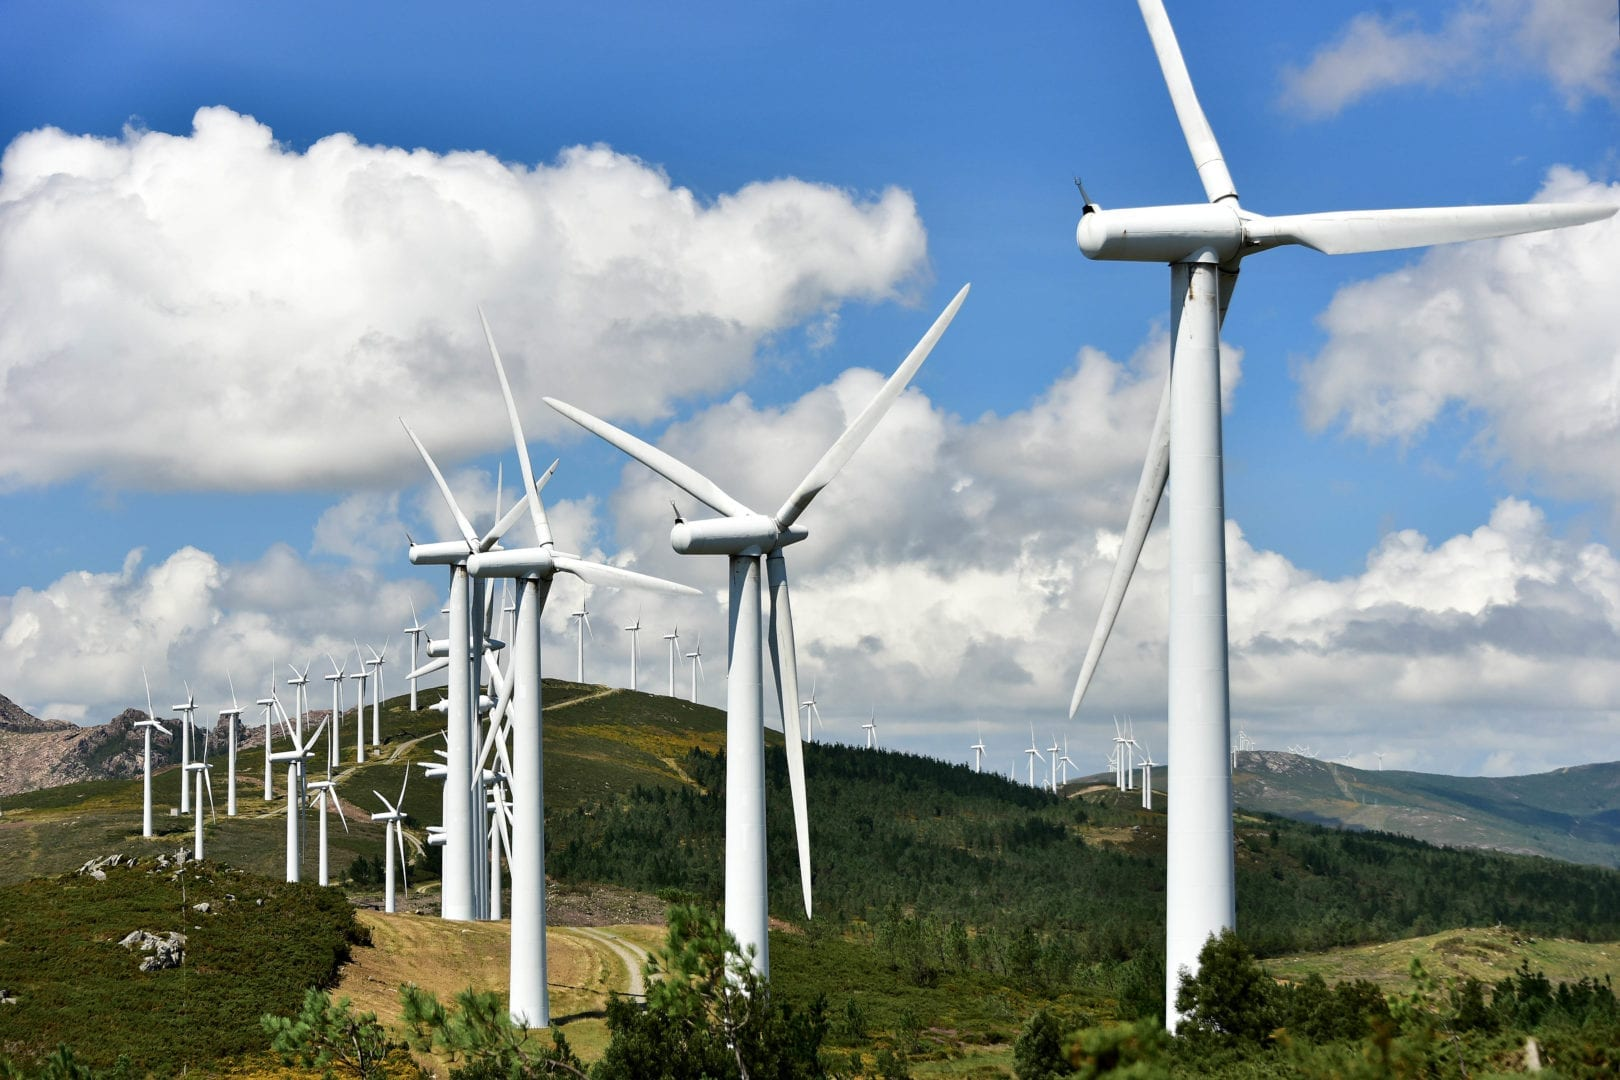 Enel Green Power breaks ground on 140MW wind farm in South Africa